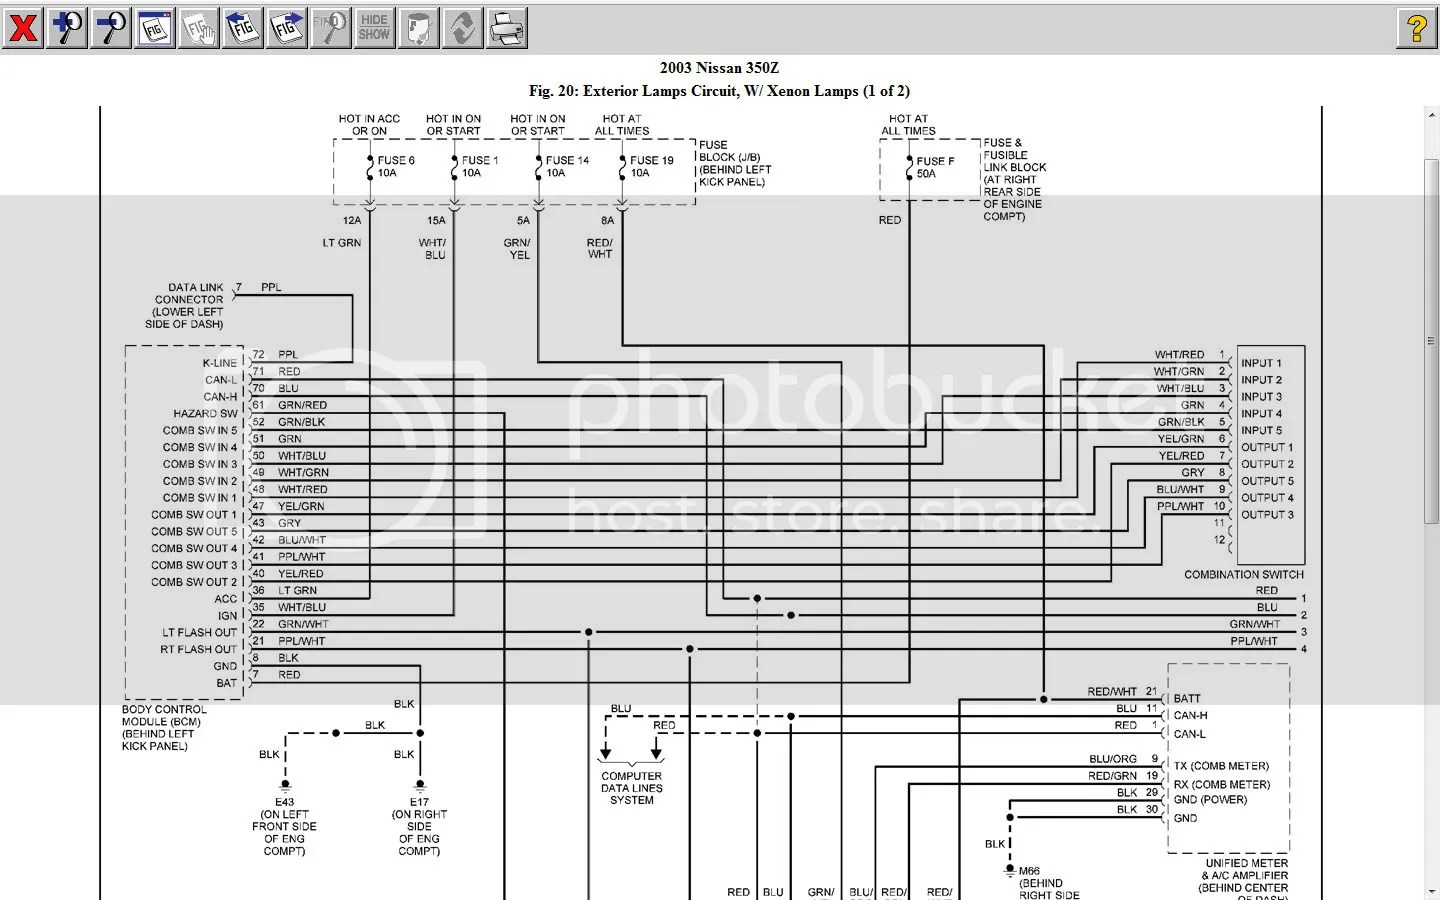 370z Stereo Wiring Diagram | Wiring Diagram on nissan versa radio wiring diagram, nissan titan radio wiring diagram, nissan frontier radio wiring diagram, nissan pathfinder radio wiring diagram, nissan maxima radio wiring diagram,